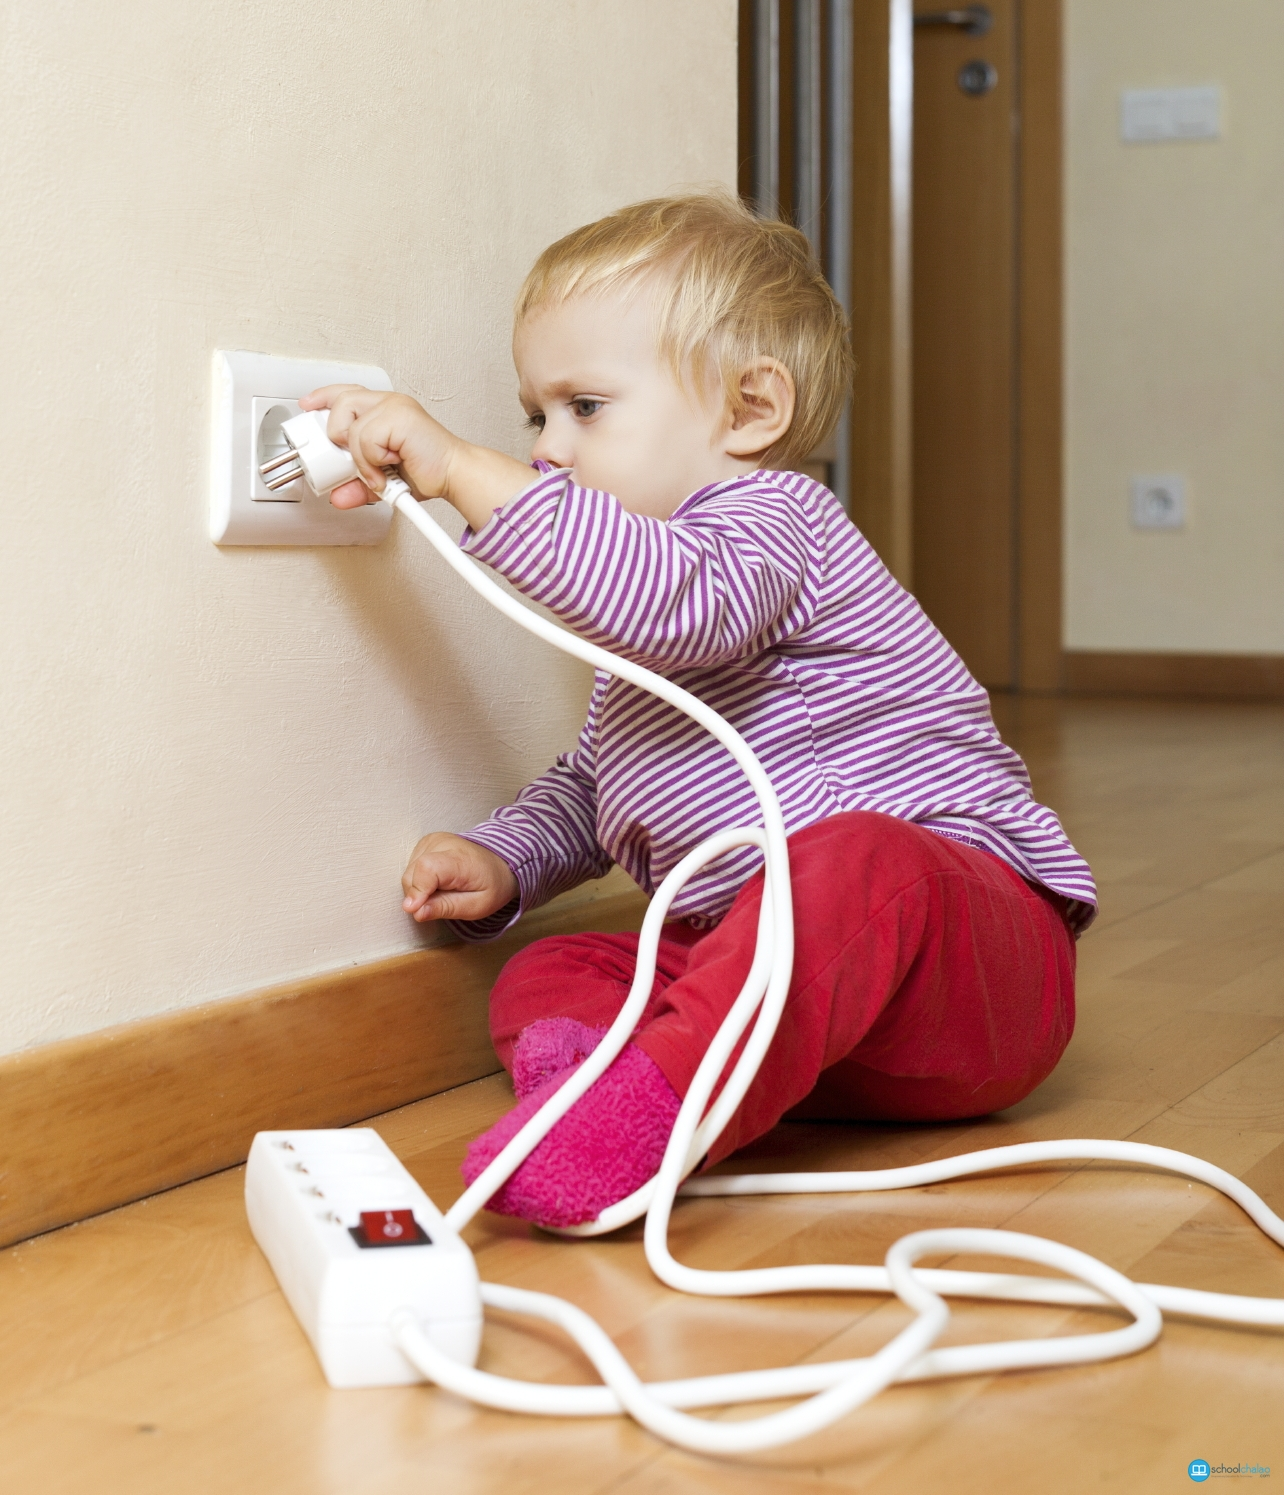 How To Treat A Victim Of Electrical Shock